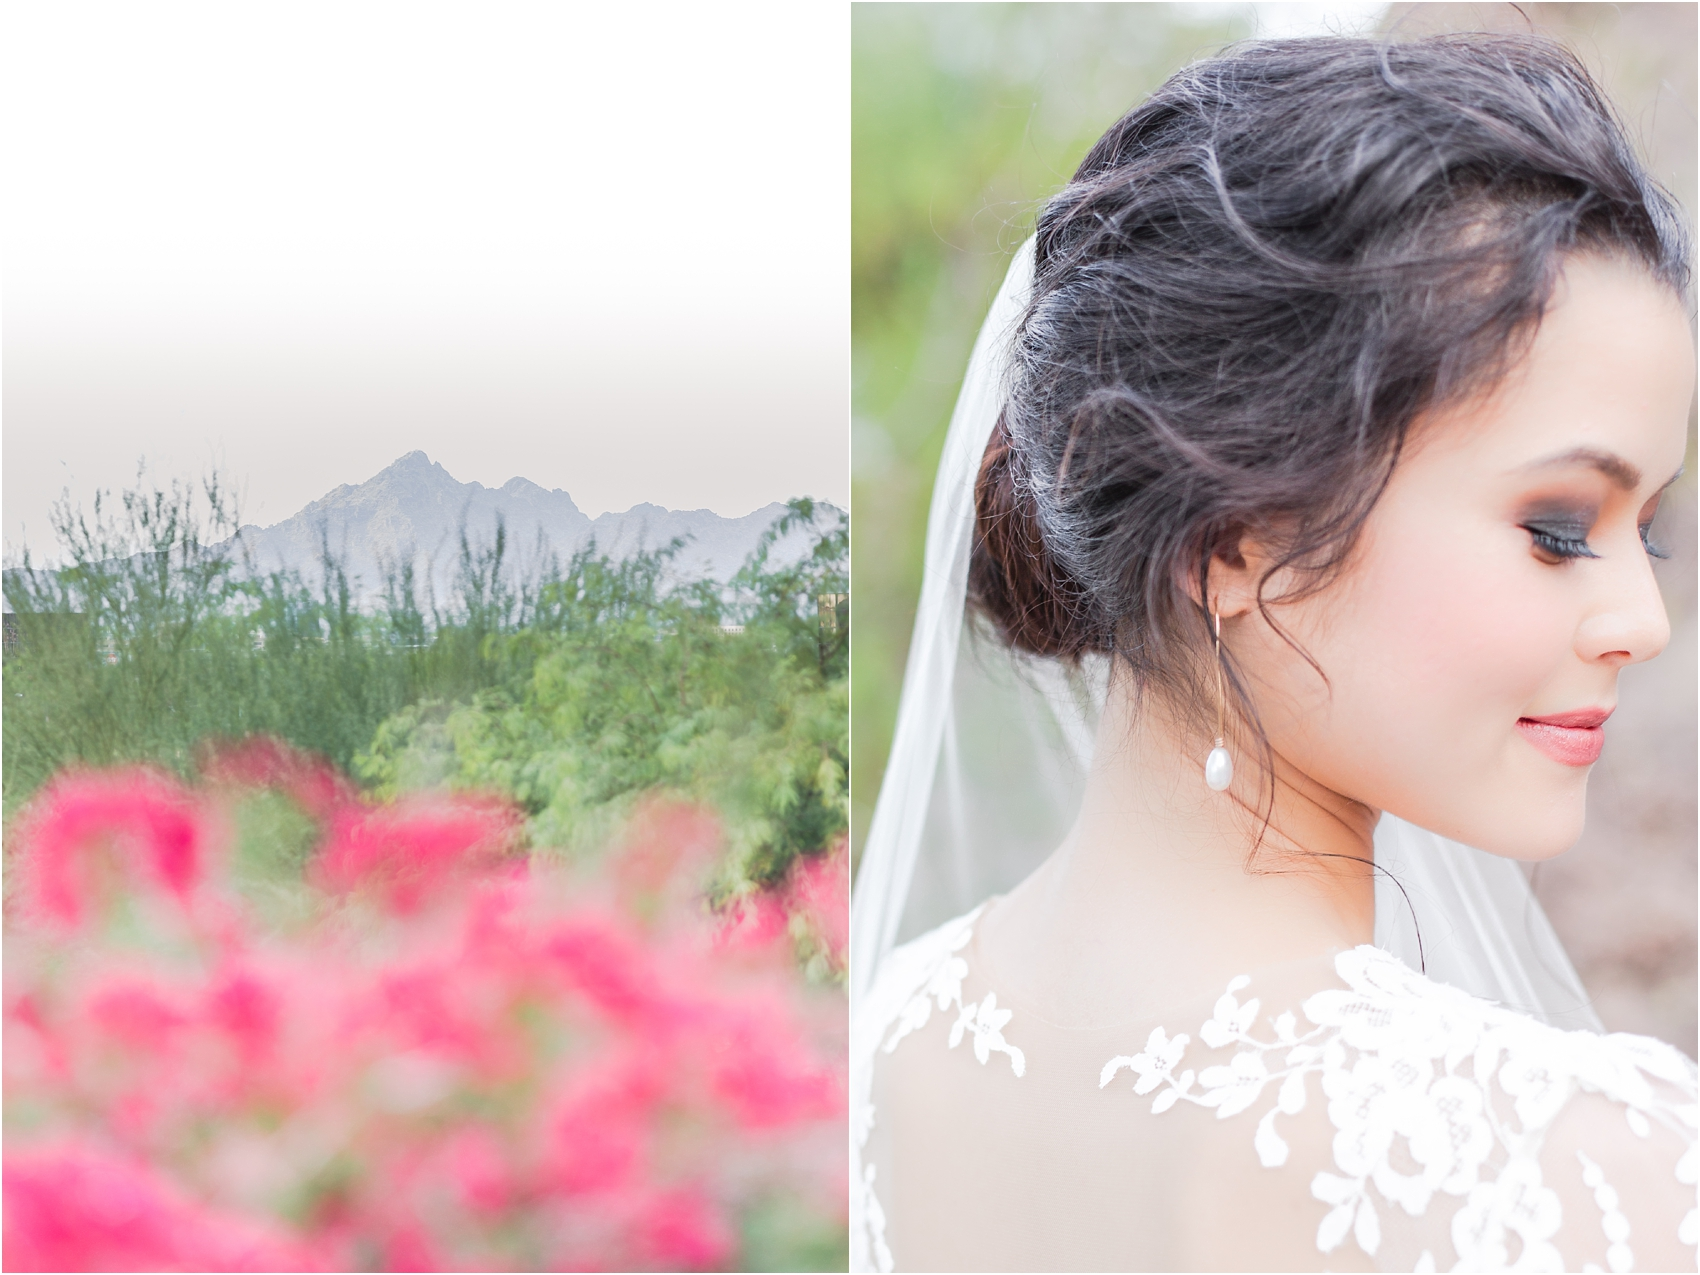 paris-and-ballerina-inspired-bride-wedding-photos-at-phoenix-marriott-tempe-at-the-buttes-in-tempe-arizona-by-courtney-carolyn-photography_0012.jpg